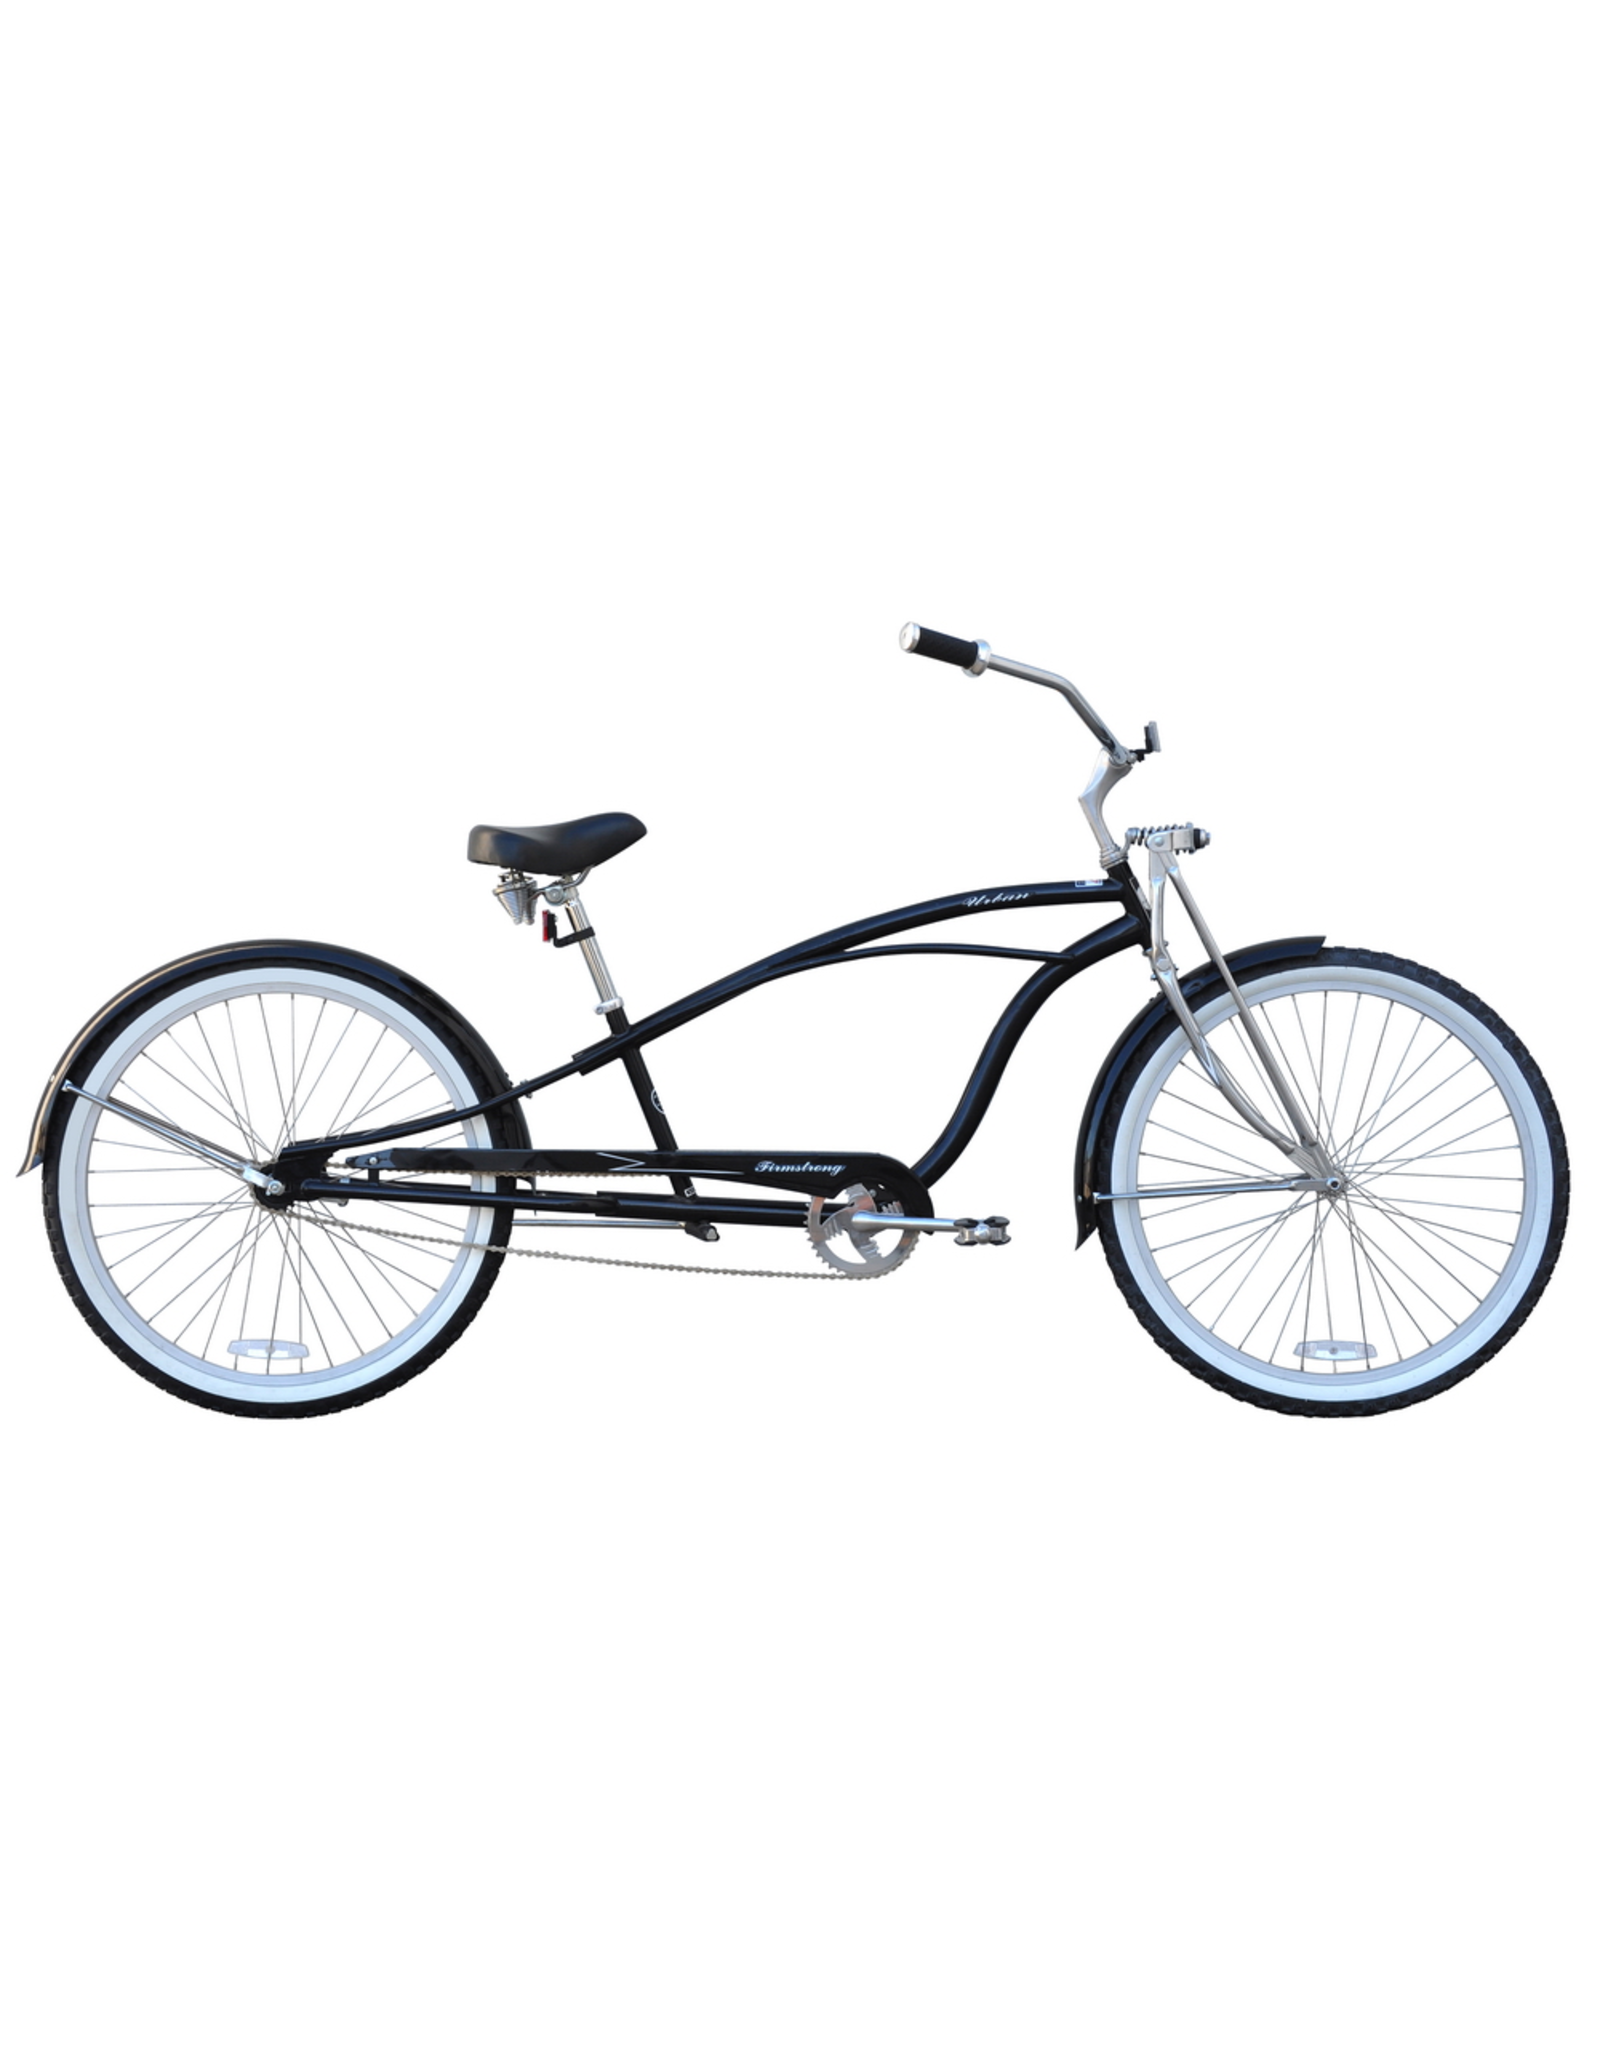 Firmstrong Firmstrong Urban Delux 1-Speed Step-Over